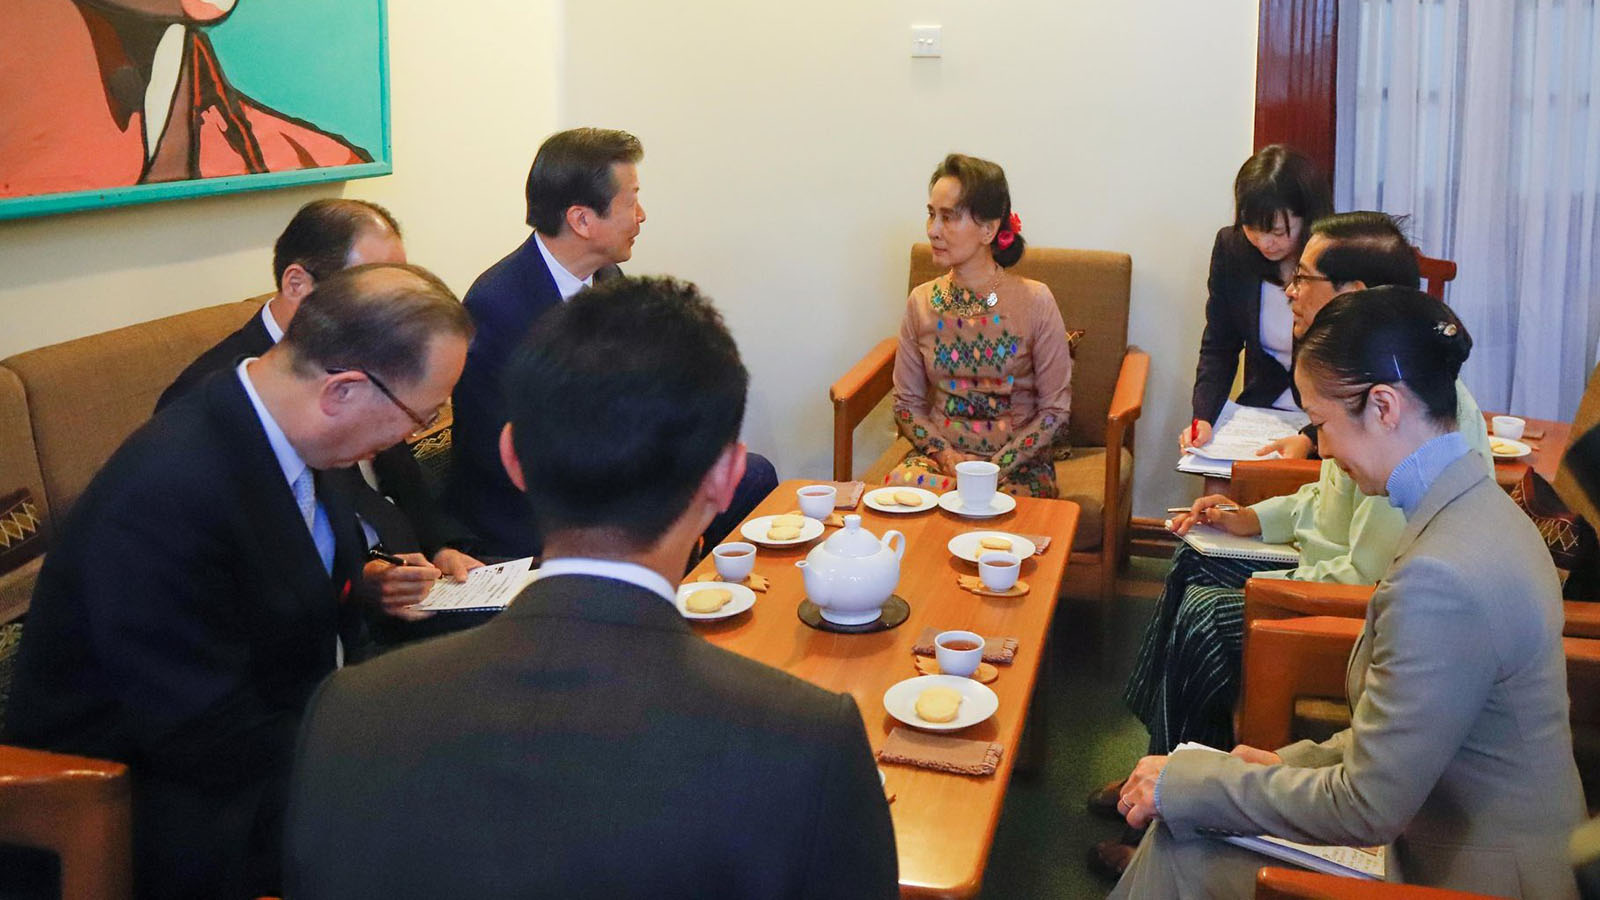 State Counsellor Daw Aung San Suu Kyi holds talks with Mr Yamaguchi Natsuo, the Upper House MP and the Chief Representative of Komeito party at her residence in Bahan Township, Yangon, yesterday. Photo: MNA